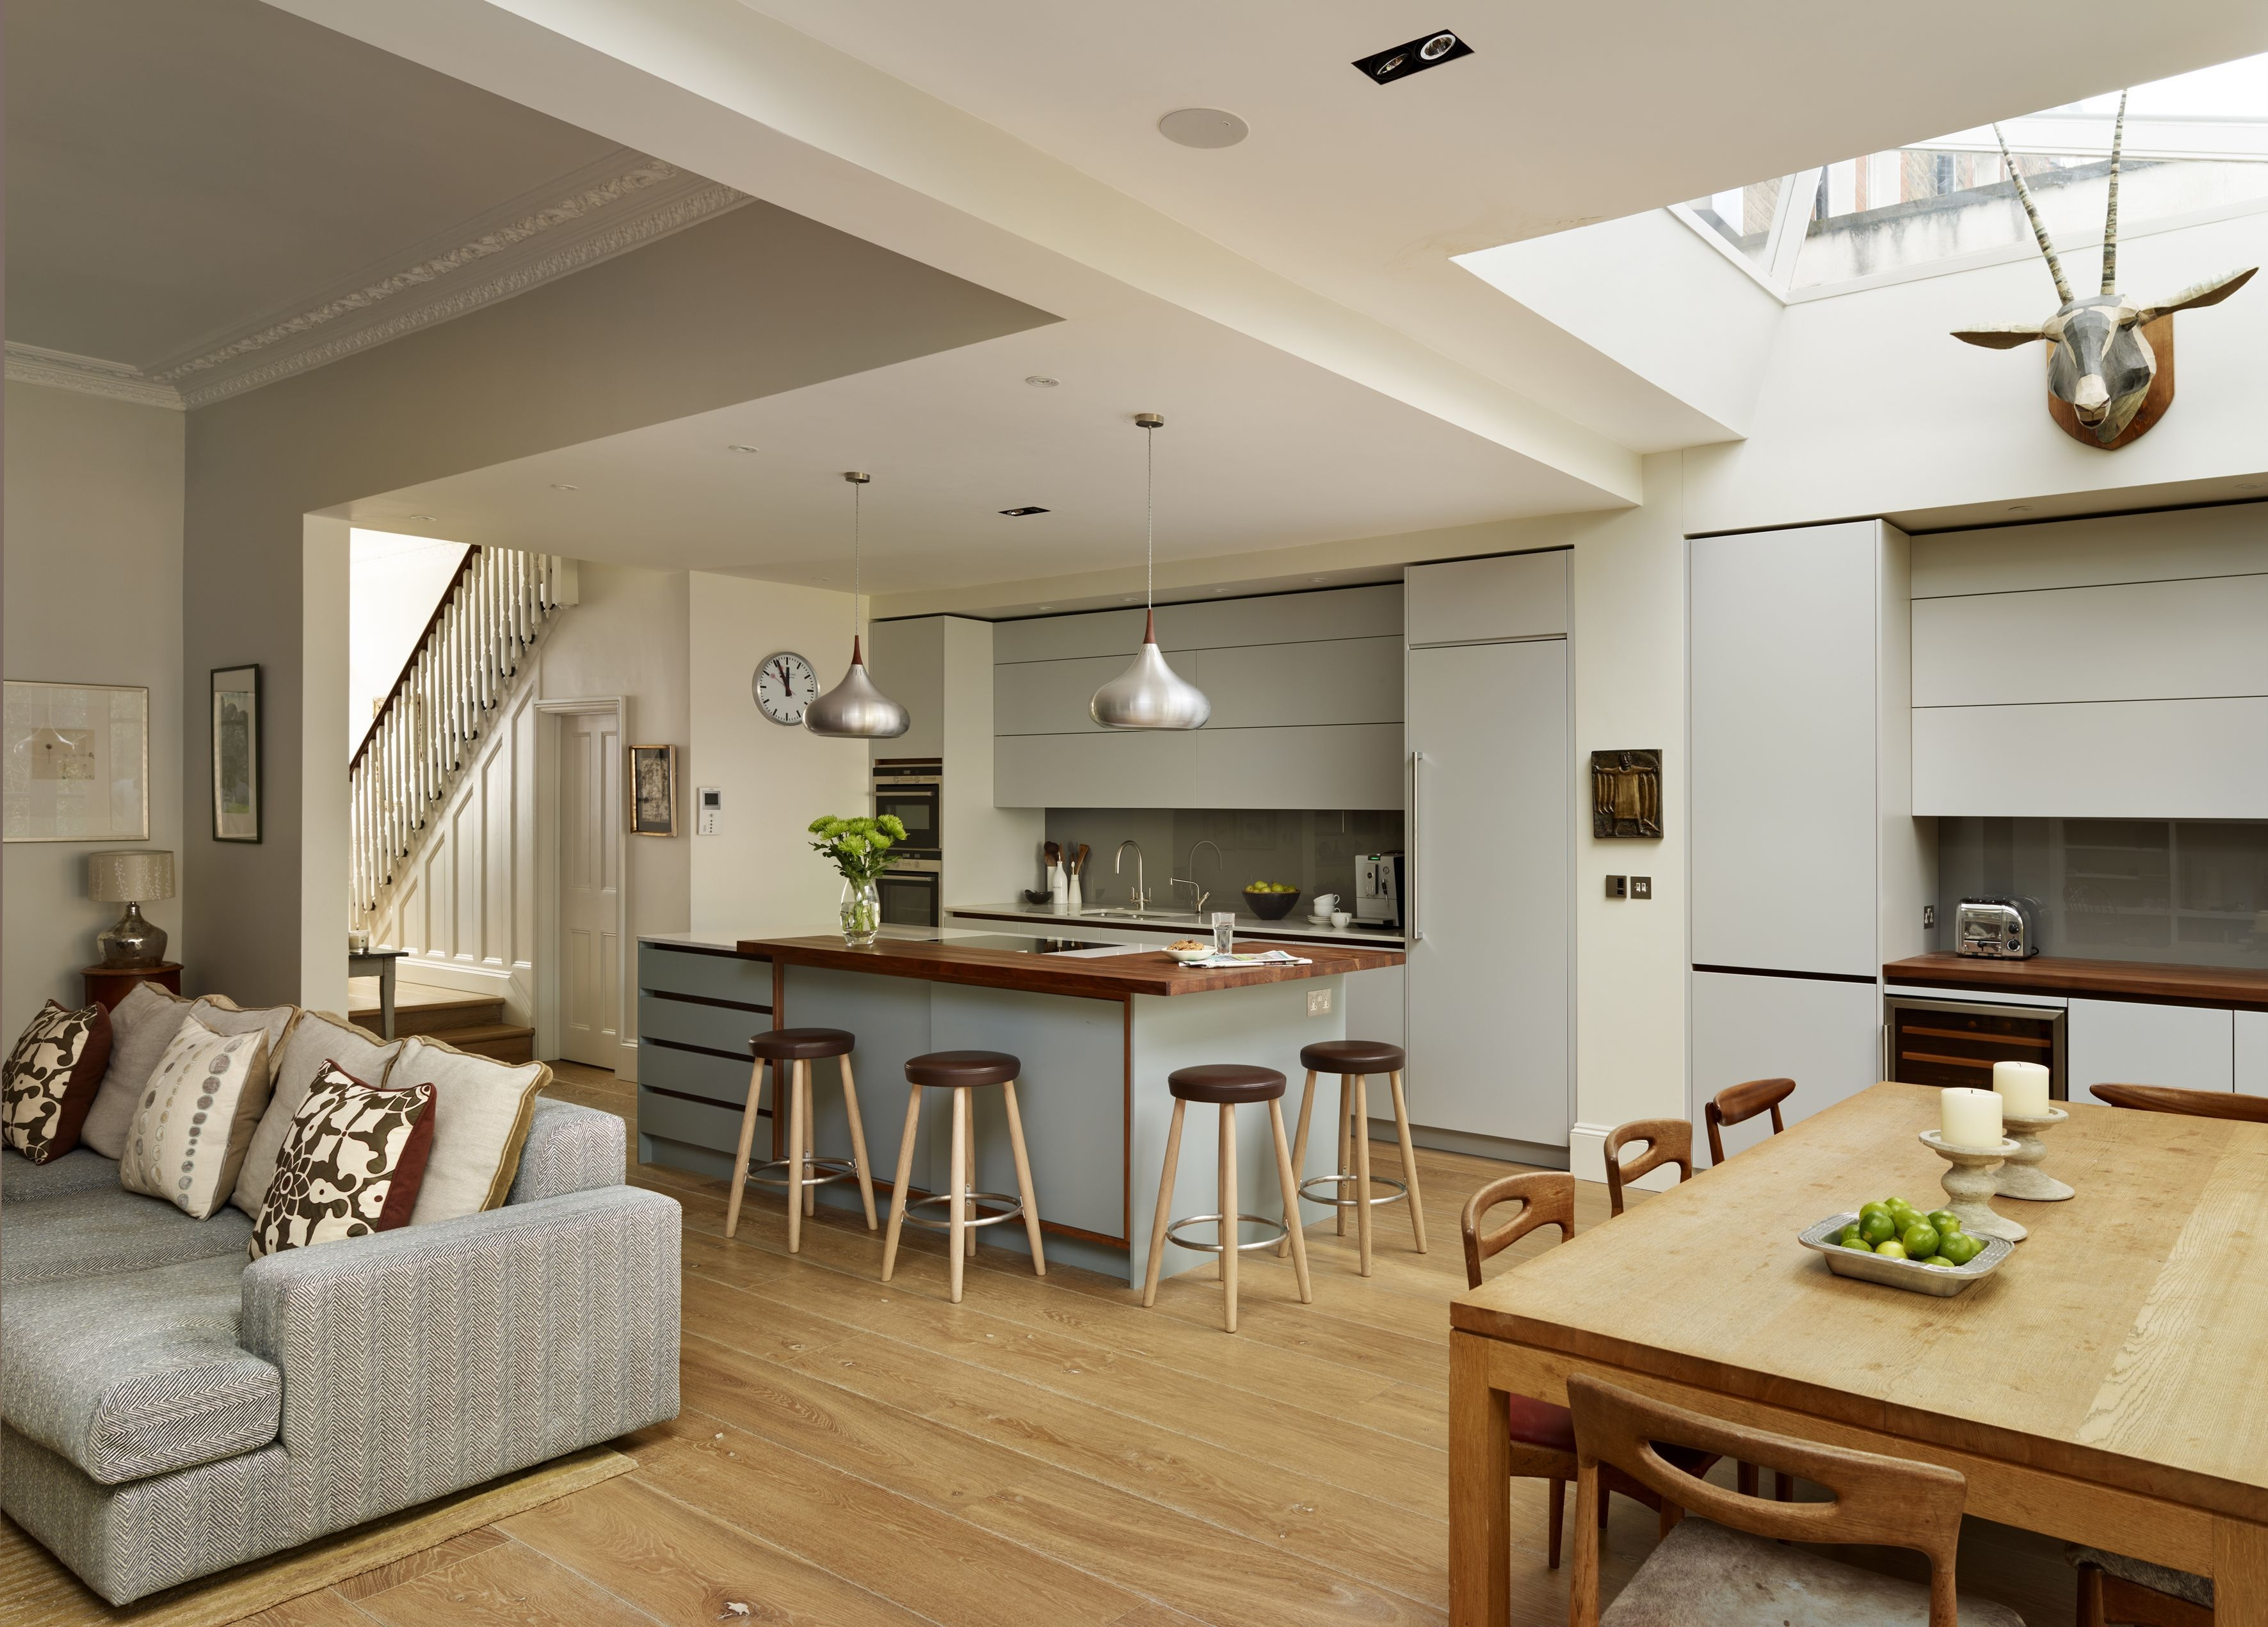 This Neutral Bespoke Roundhouse Kitchen Features Handleless Draws And A Stylis…  Open Plan